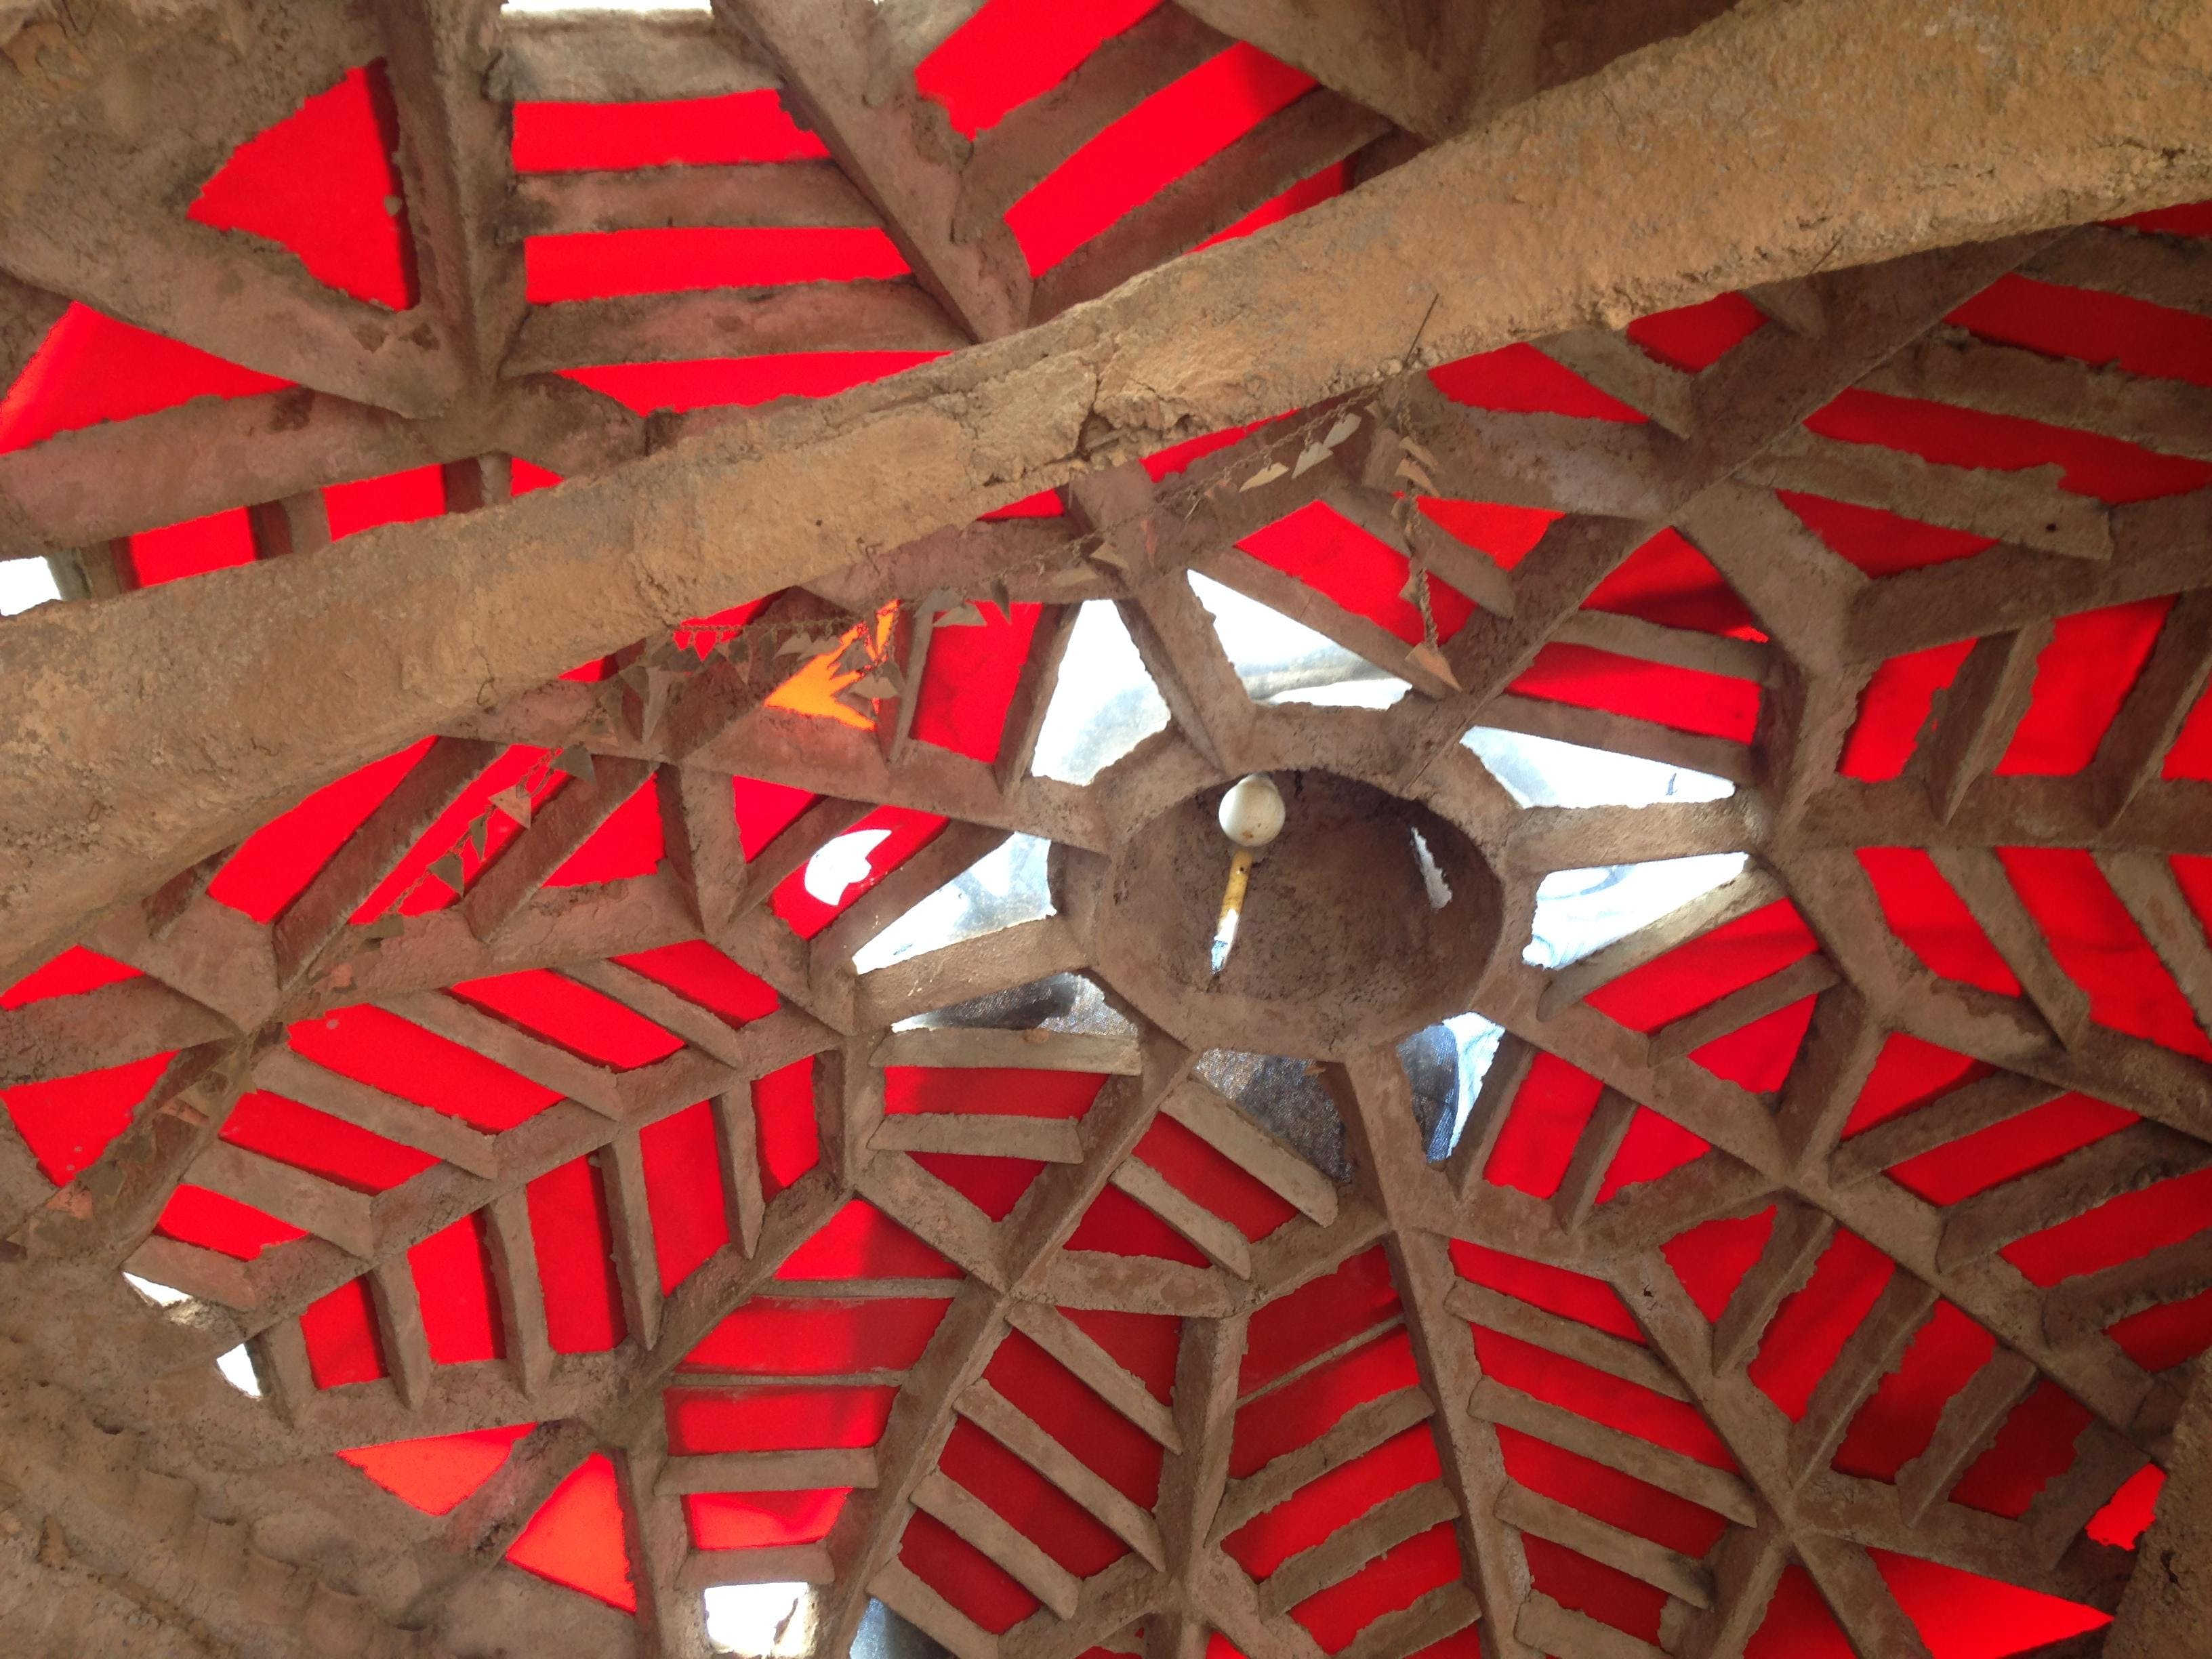 Tour Paolo Soleri's Cosanti With Roger Tomalty